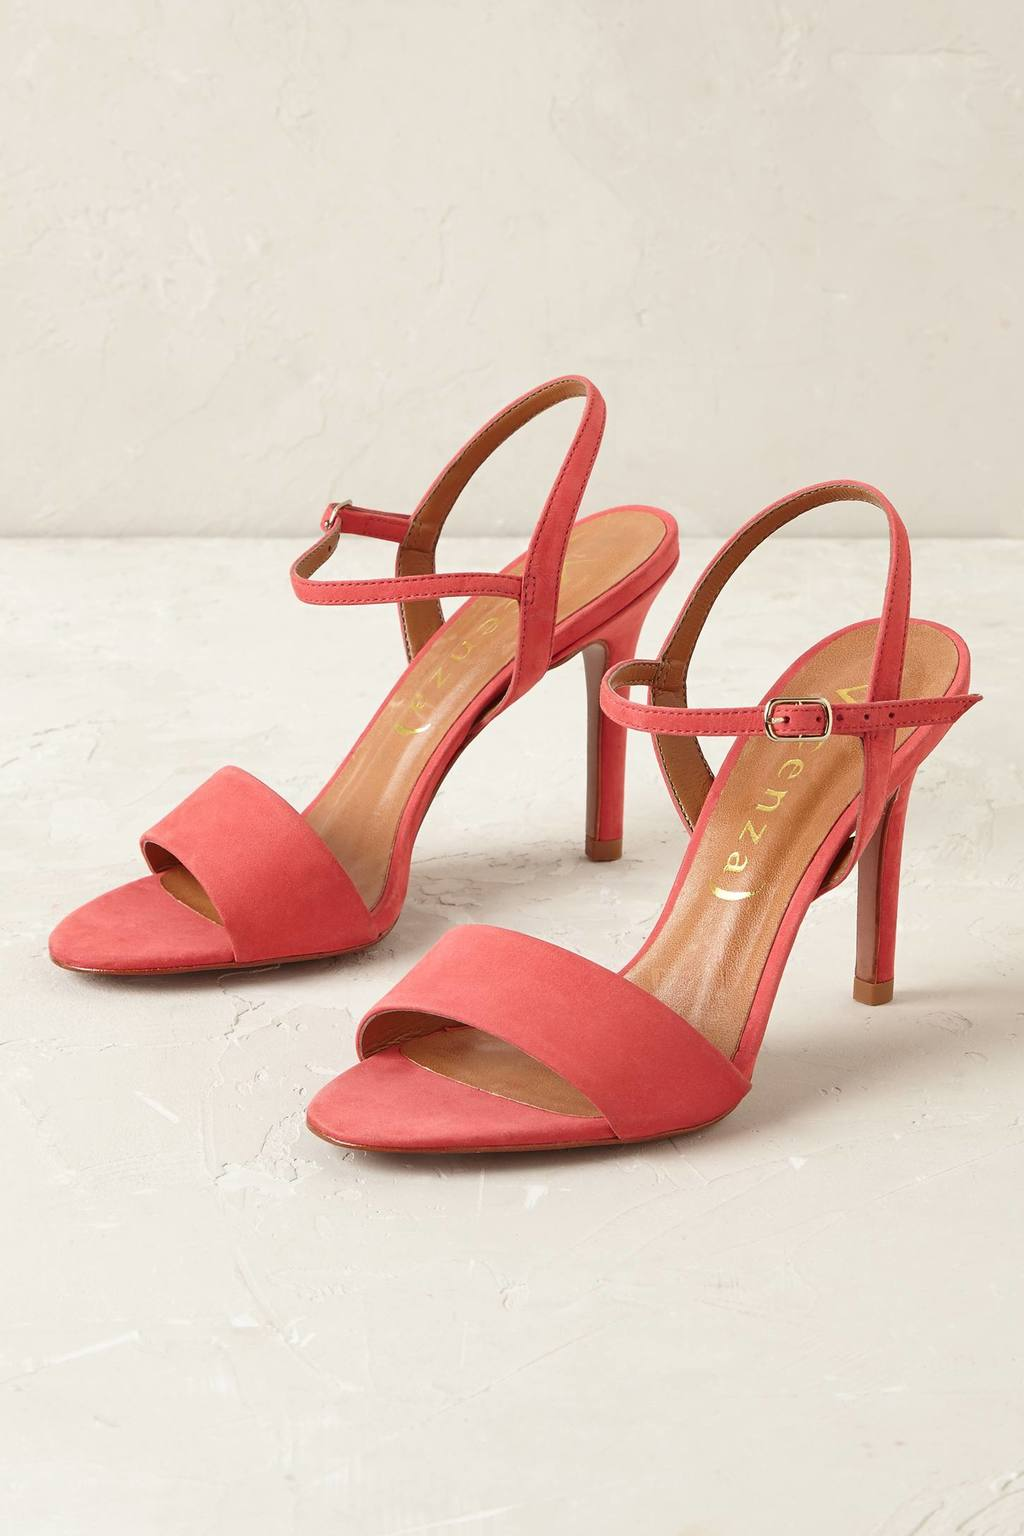 Rosalia Nubuck Heels - predominant colour: coral; occasions: evening, occasion; material: faux leather; heel height: high; heel: stiletto; toe: open toe/peeptoe; style: standard; finish: plain; pattern: plain; season: s/s 2016